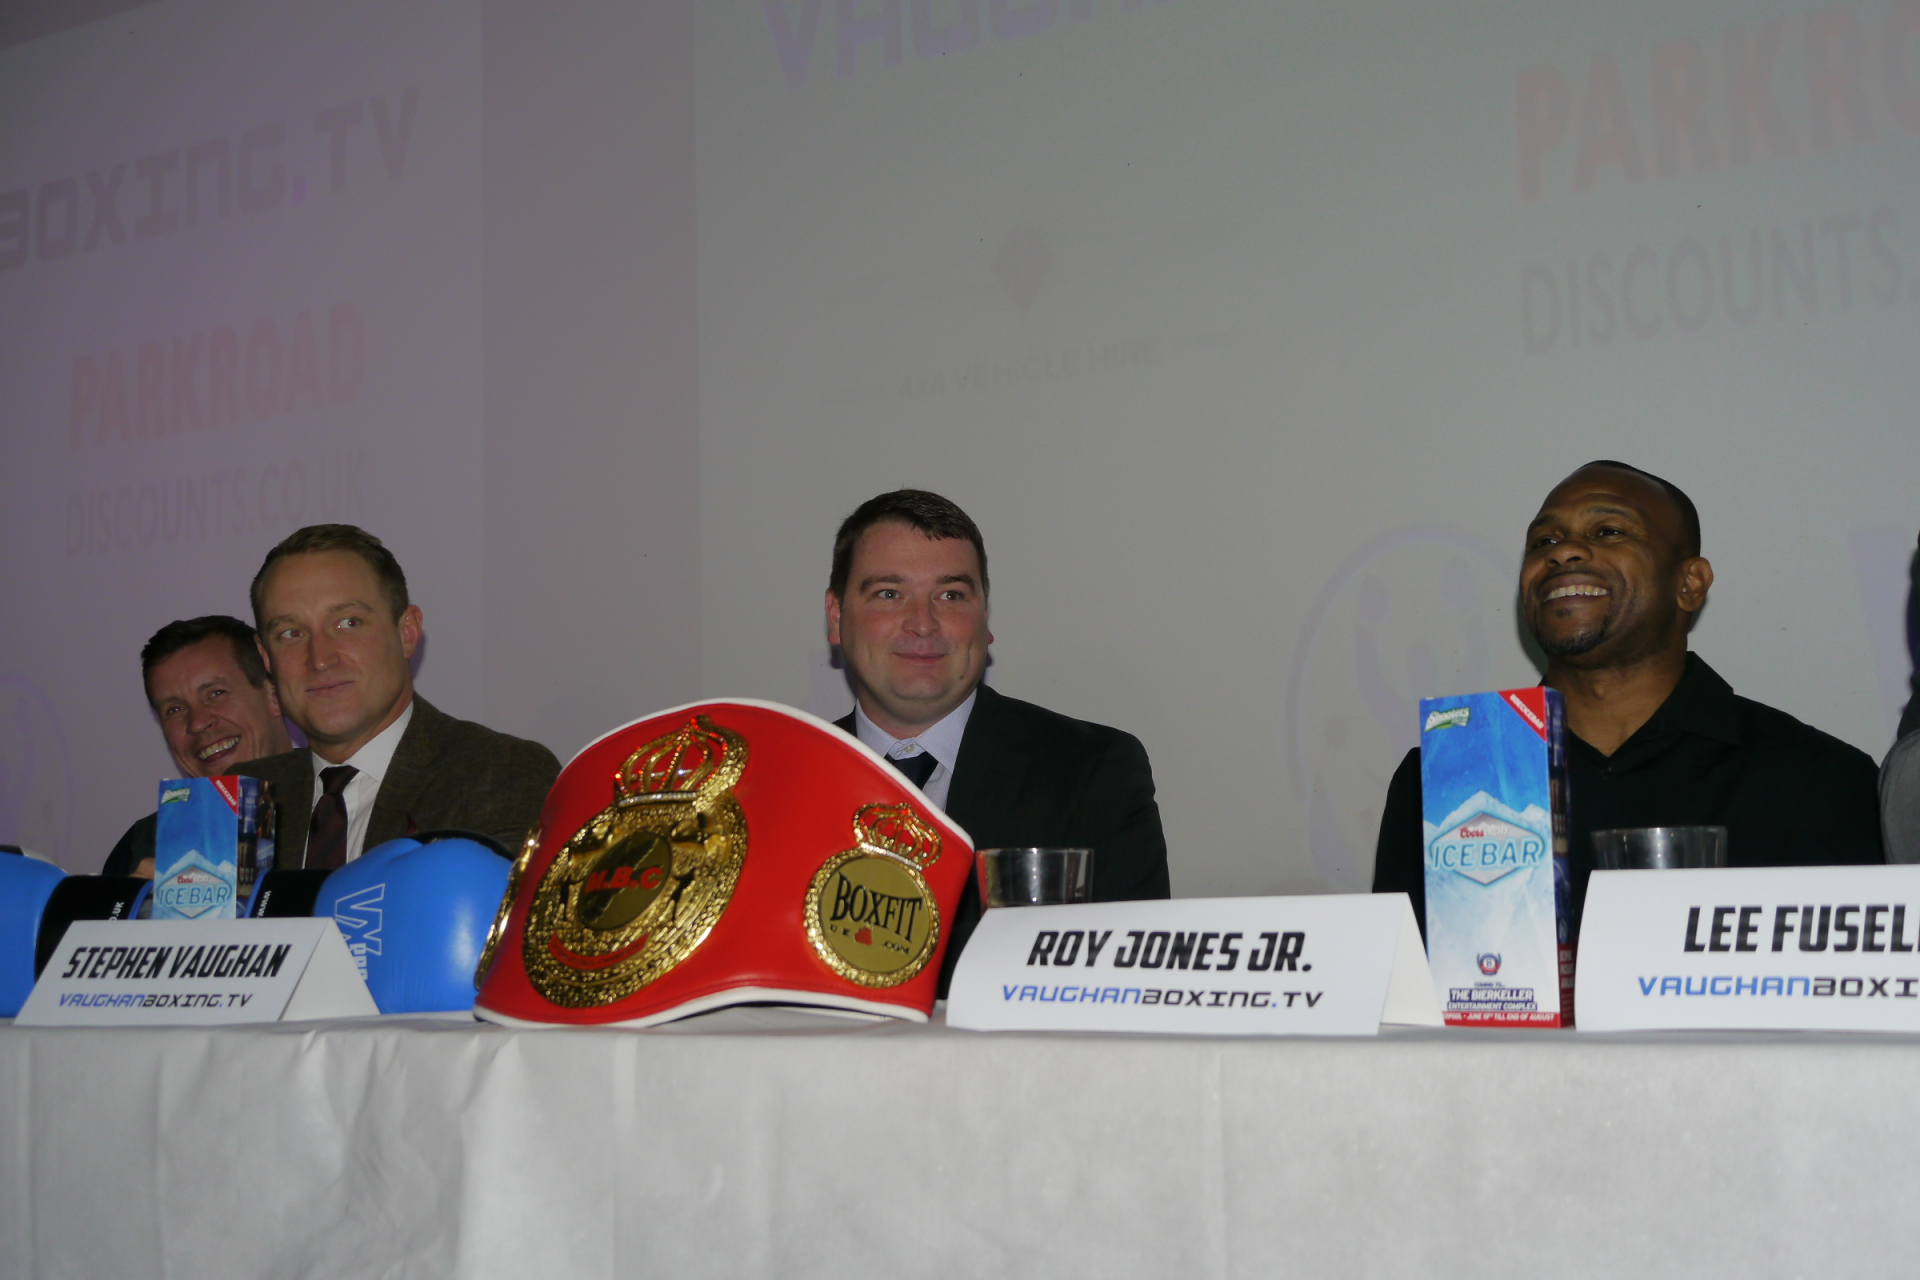 Roy Jones Jr, Stephen Vaughan, Francis Warren